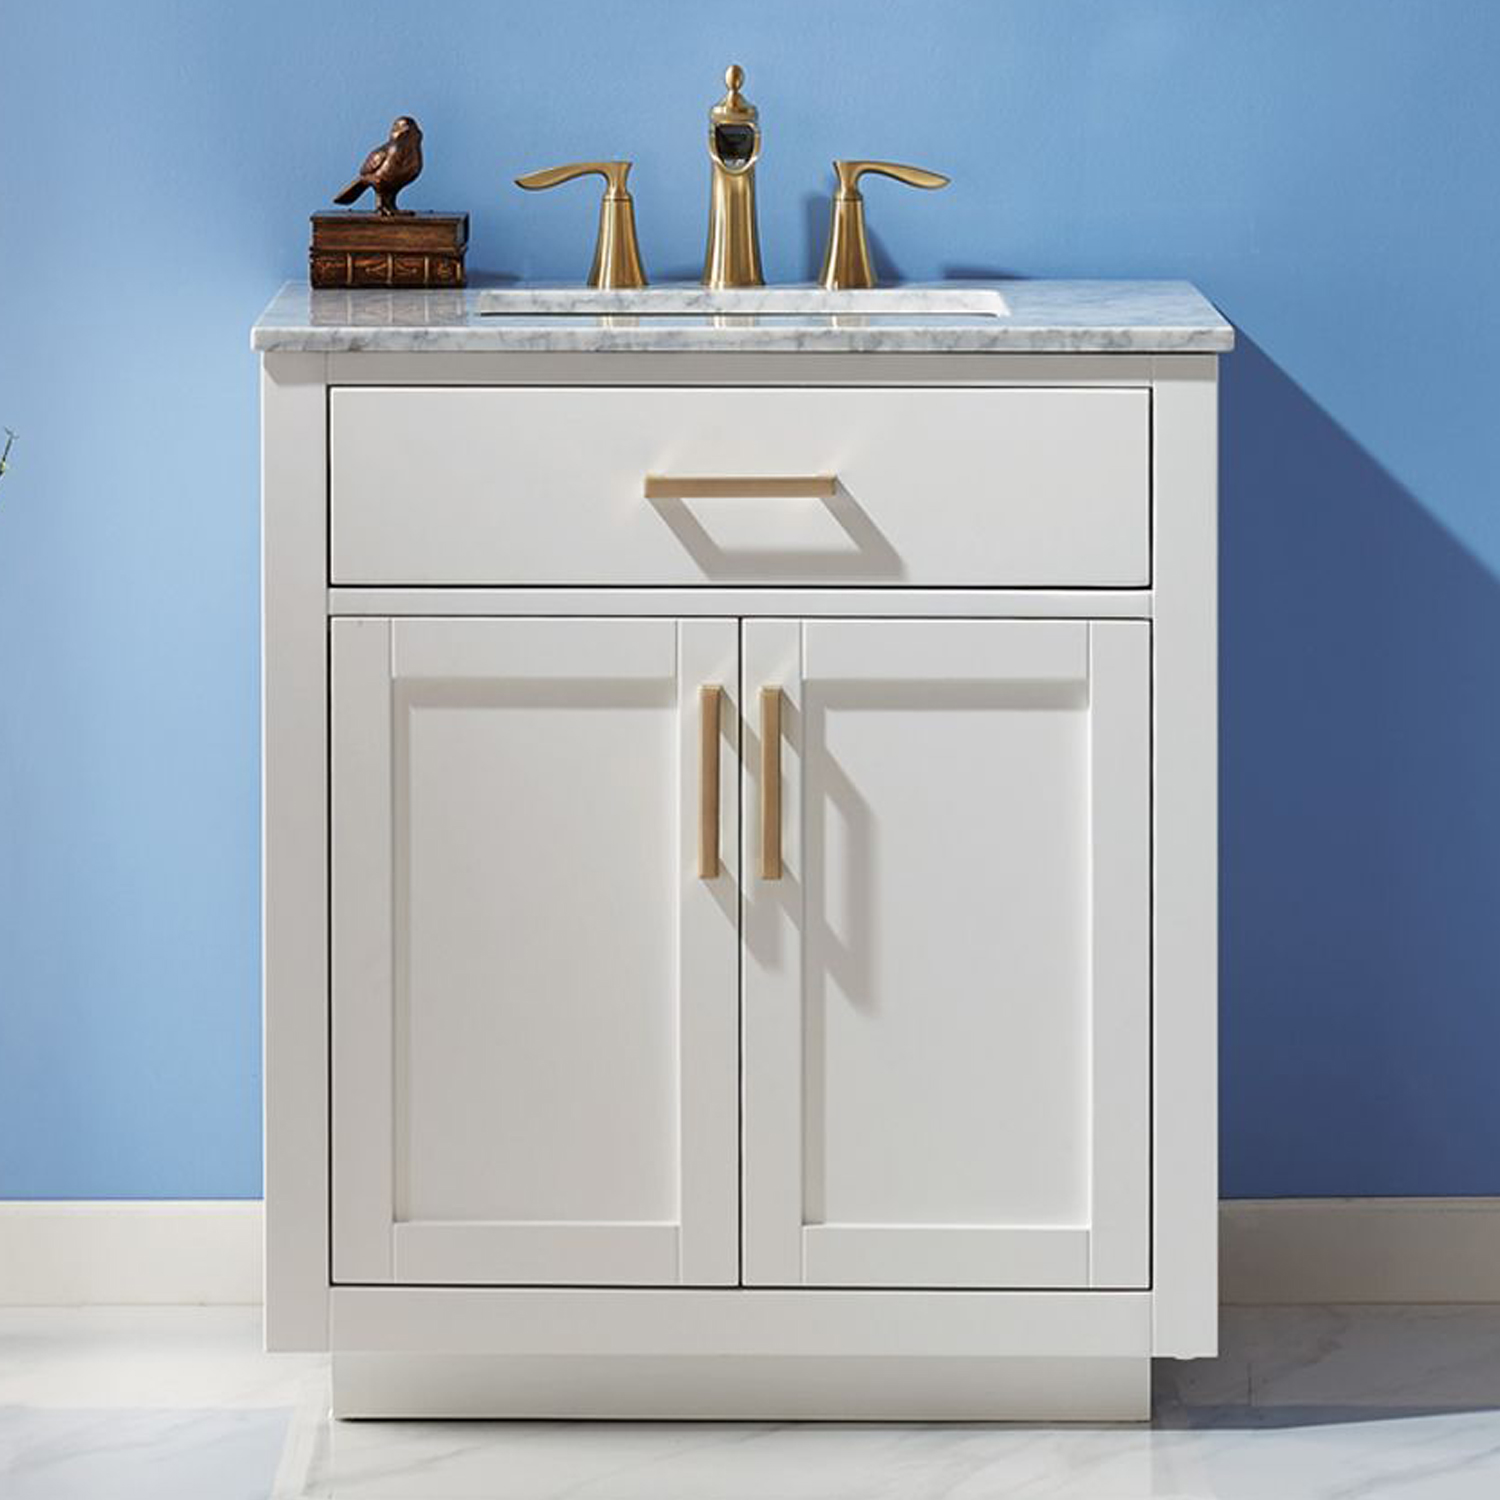 "Issac Edwards Collection 30"" Single Bathroom Vanity Set in White and Carrara White Marble Countertop without Mirror"